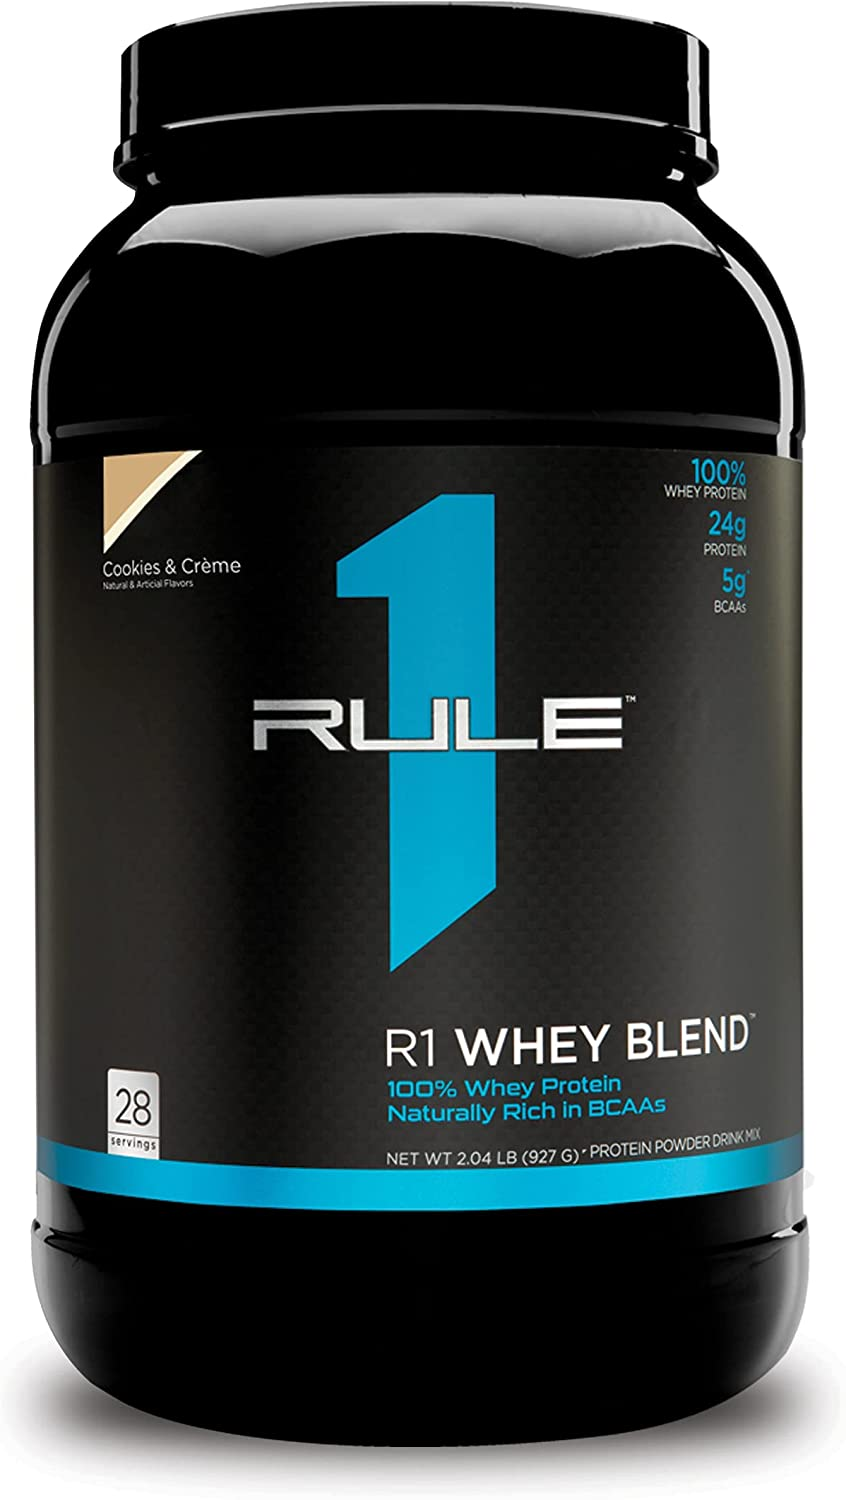 Rule One Proteins R1 Whey Blend Cookies - Fast-Act 24g Crème Los Angeles Mall Sales for sale